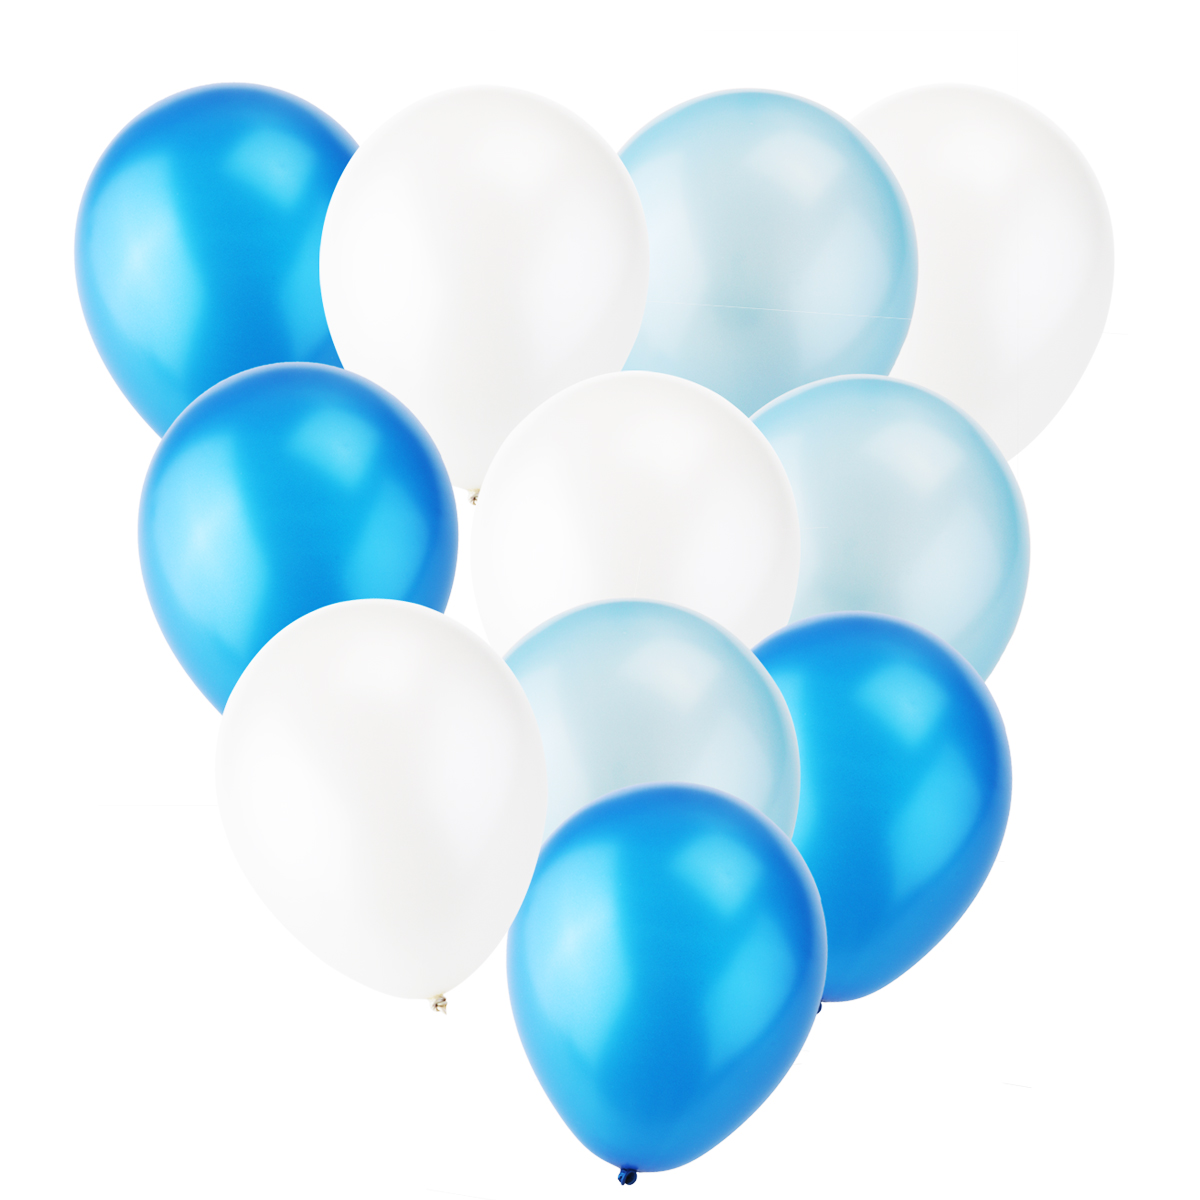 Green and blue balloons - 30pcs 12 Inch Pearl Latex Balloons For Wedding Birthday Party Balloons Toy For Kids Having Fun Navy Blue Light Blue White